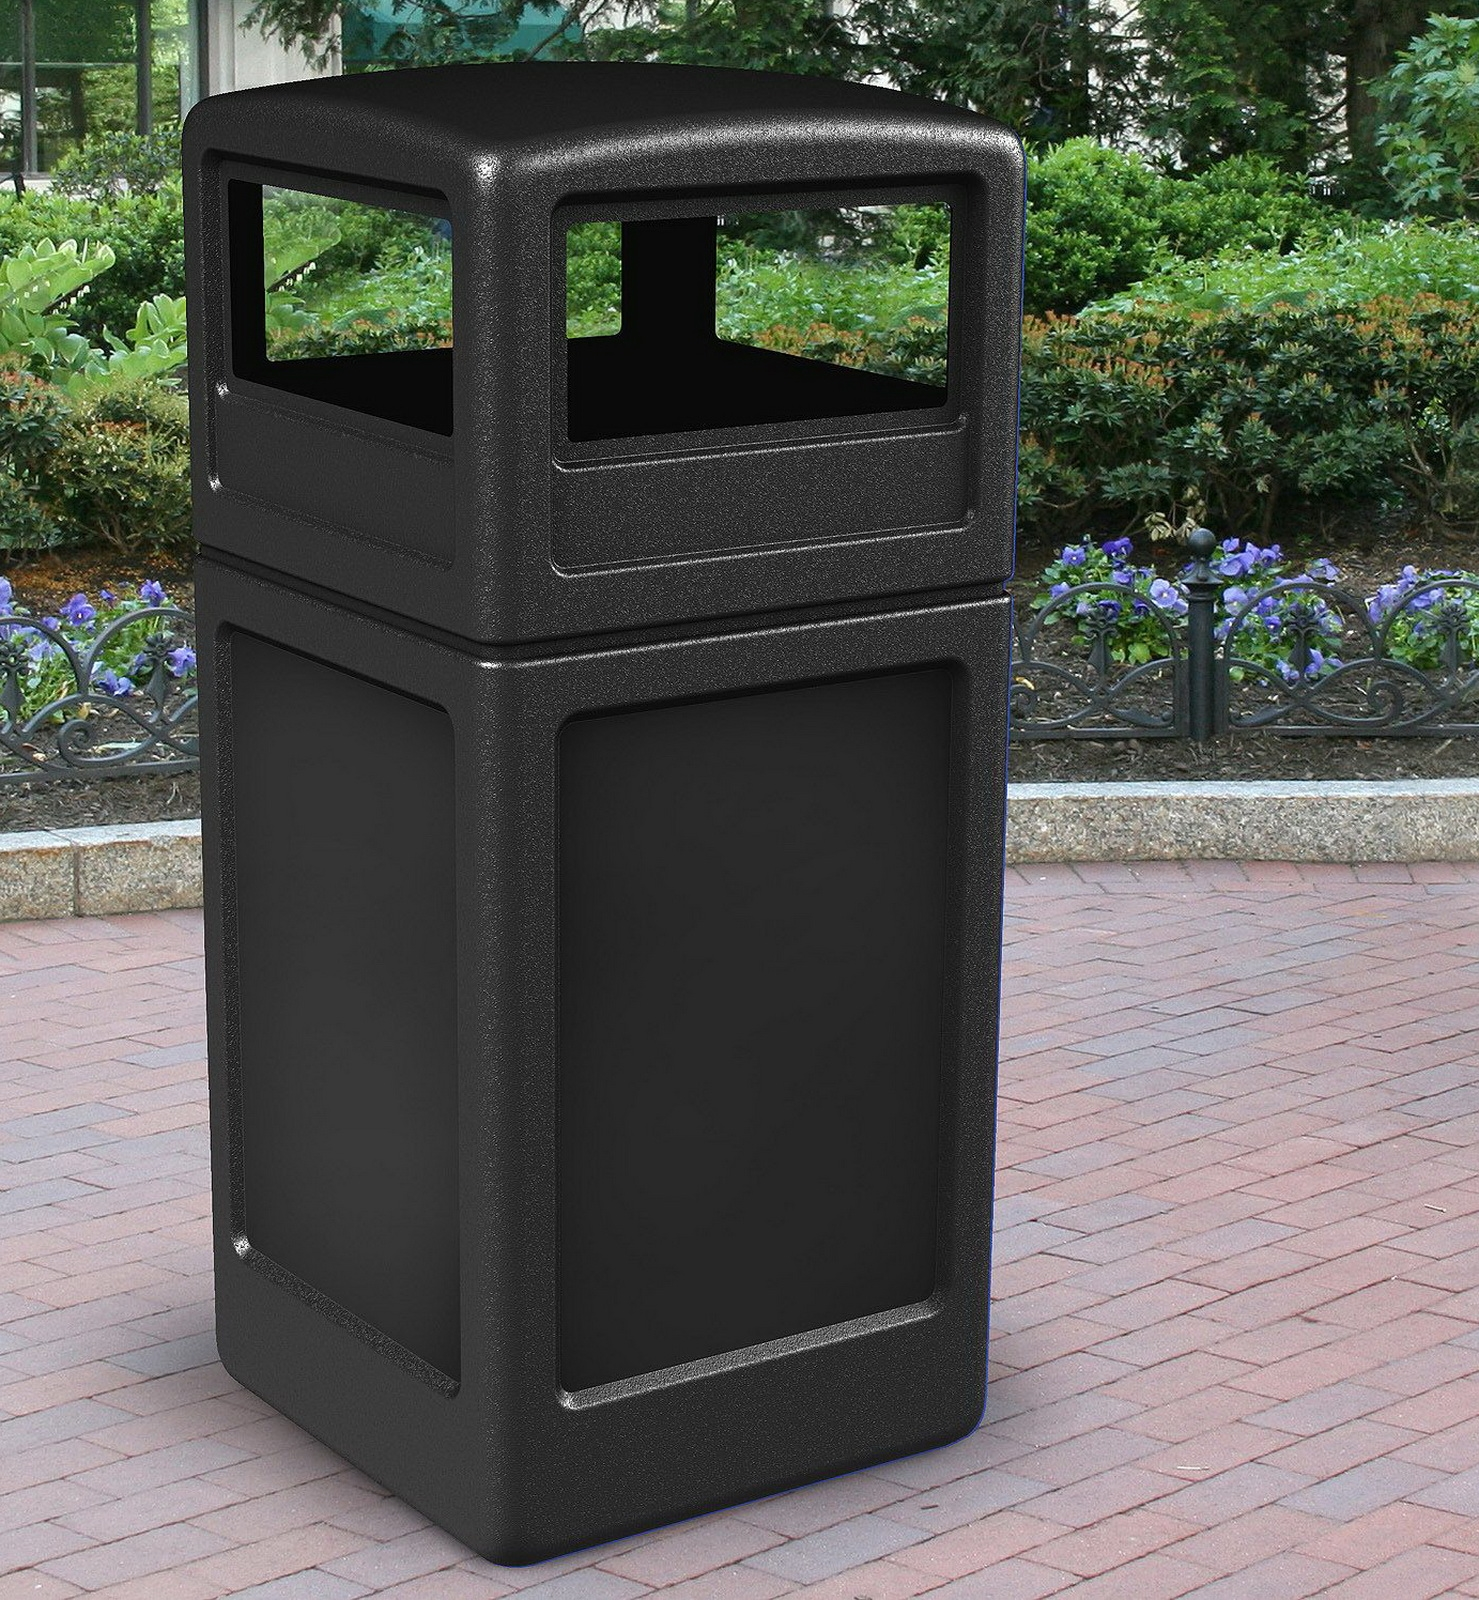 Black 38 Gallon Commercial Outdoor Trash Can Garbage Can Dome Lid